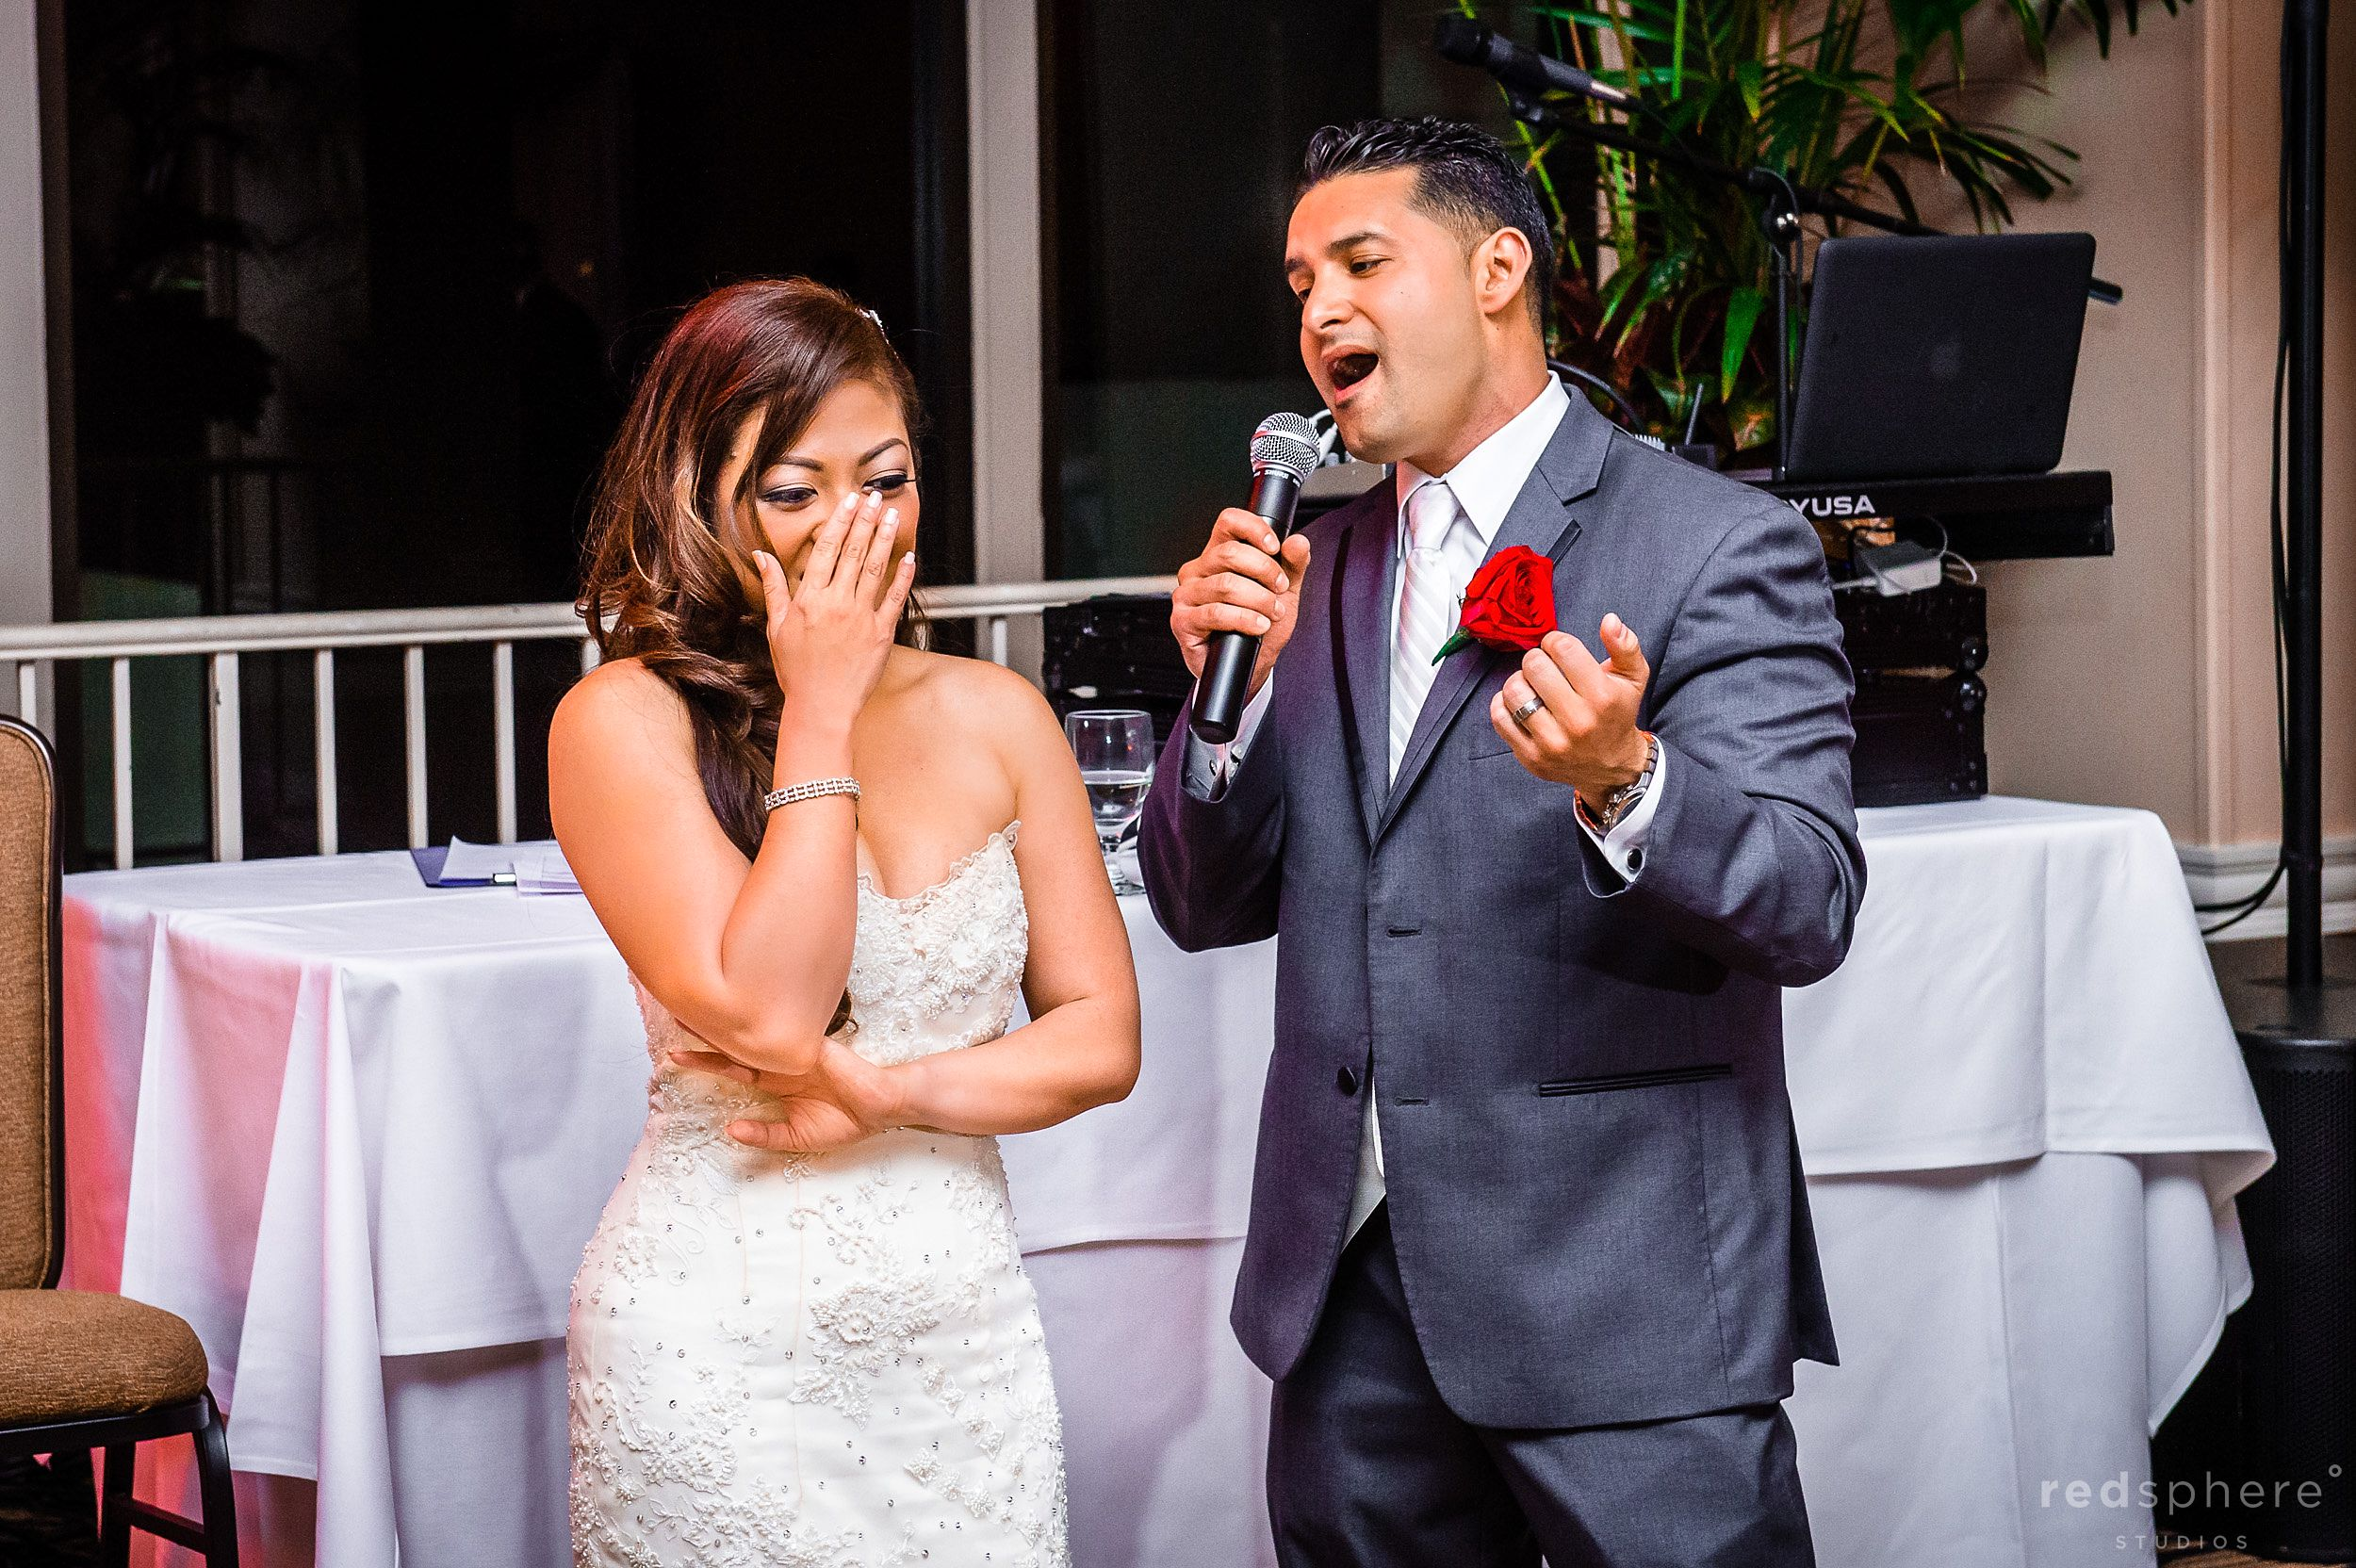 Bride Turns Red as Groom Sings To Her, Wedding Reception Danville California